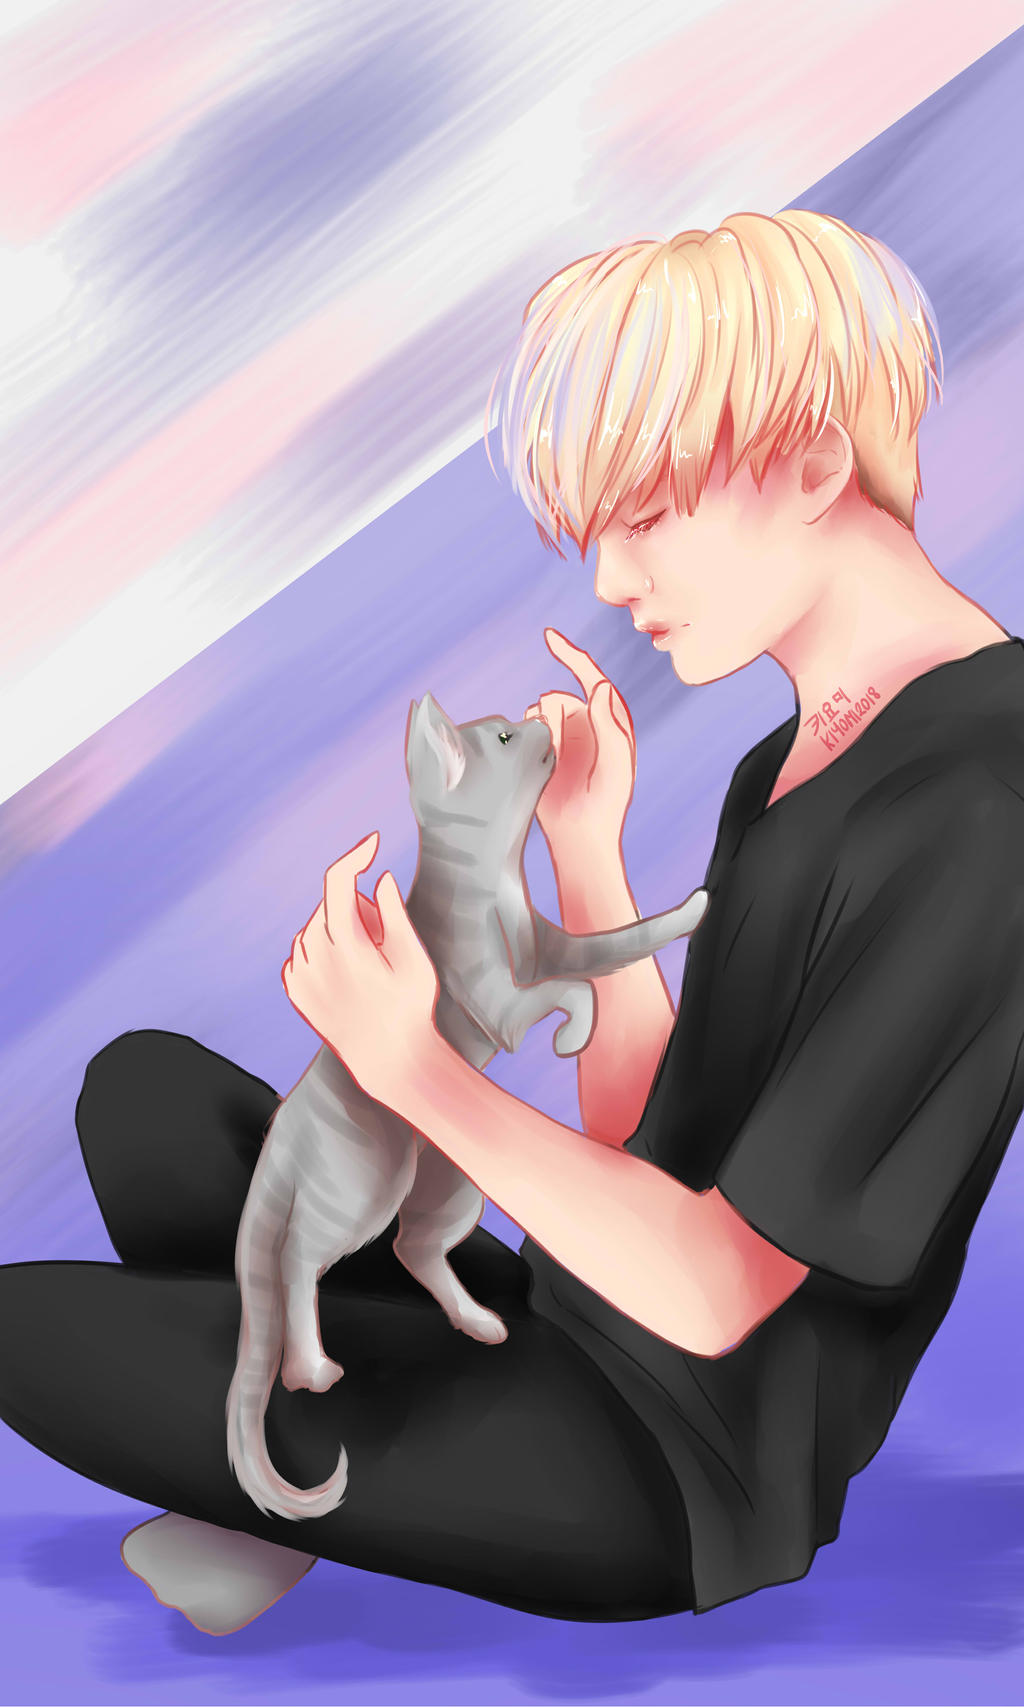 bts suga holding a gray cat wallpaper lockscreen by kiyomit dcgtdo1